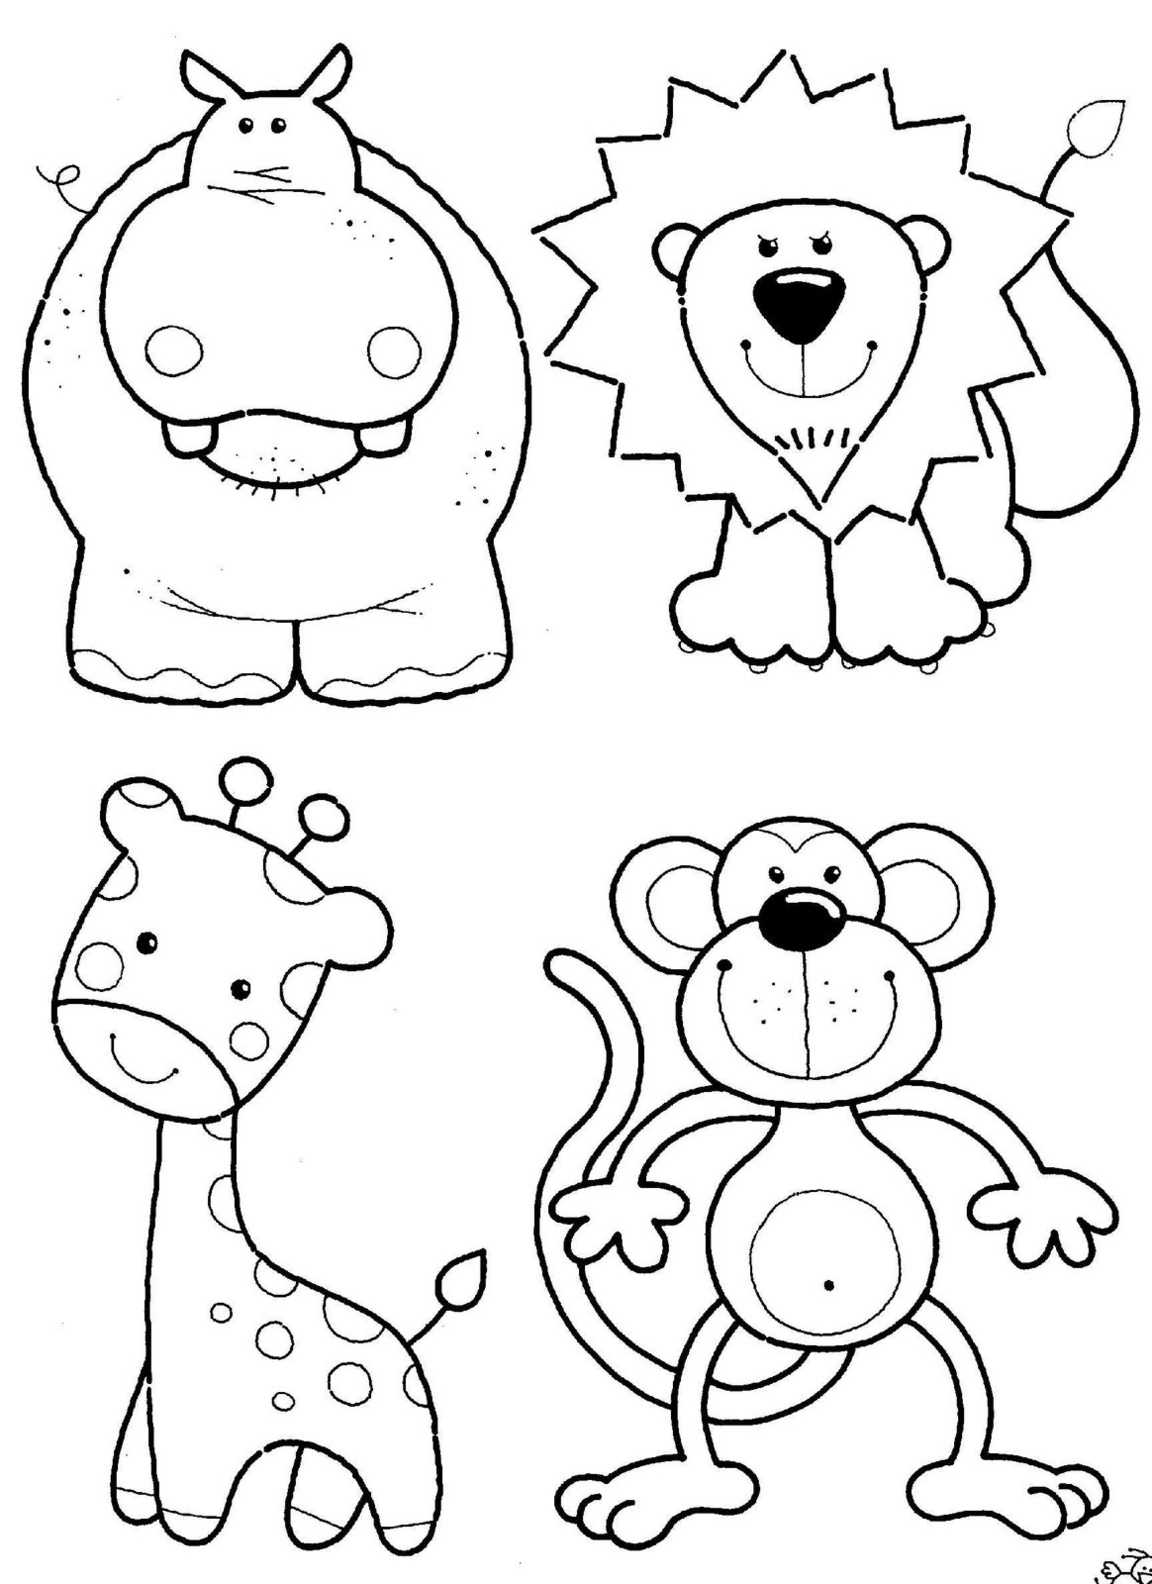 animal coloring cute animal coloring pages best coloring pages for kids coloring animal